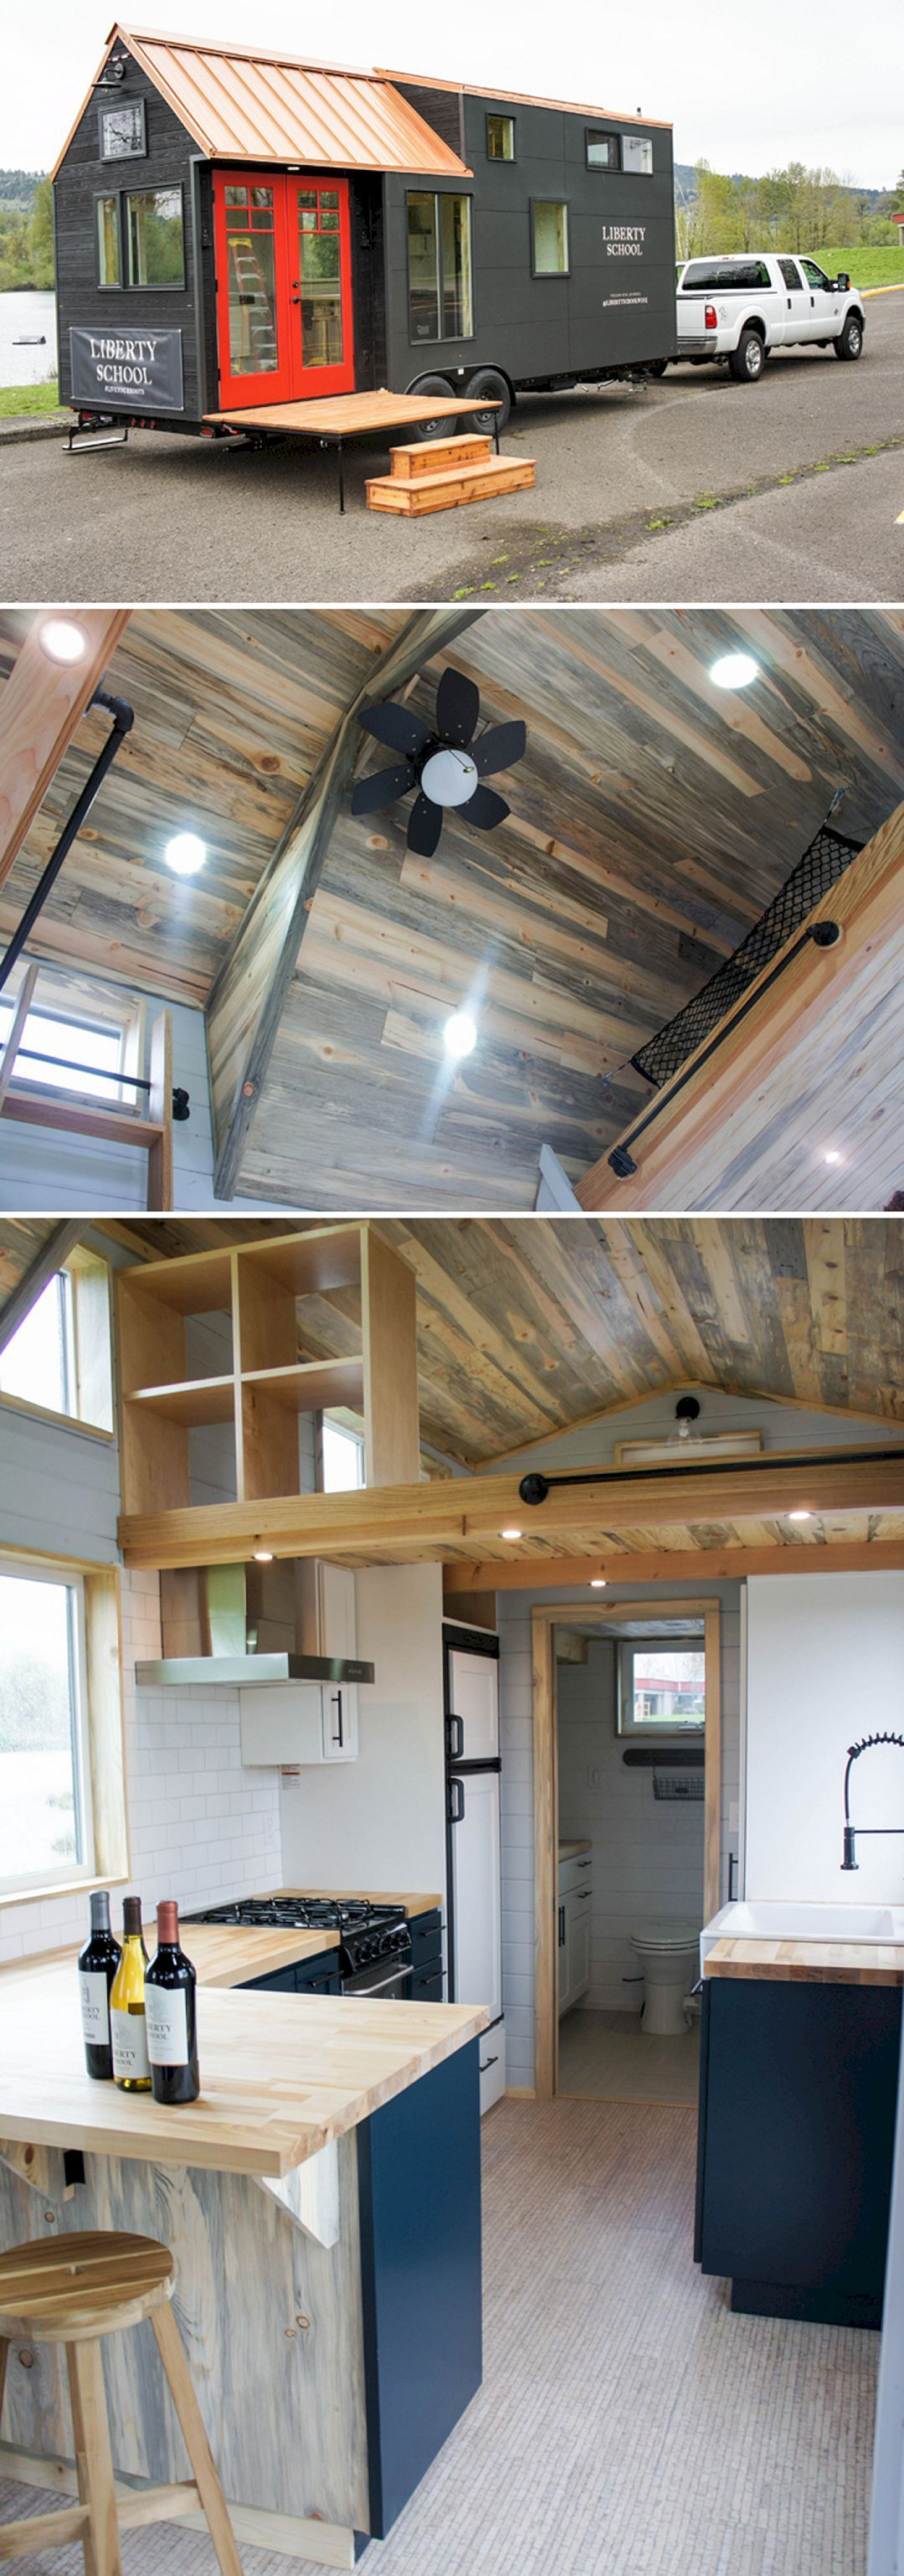 Marvelous and impressive tiny houses design that maximize style and ...